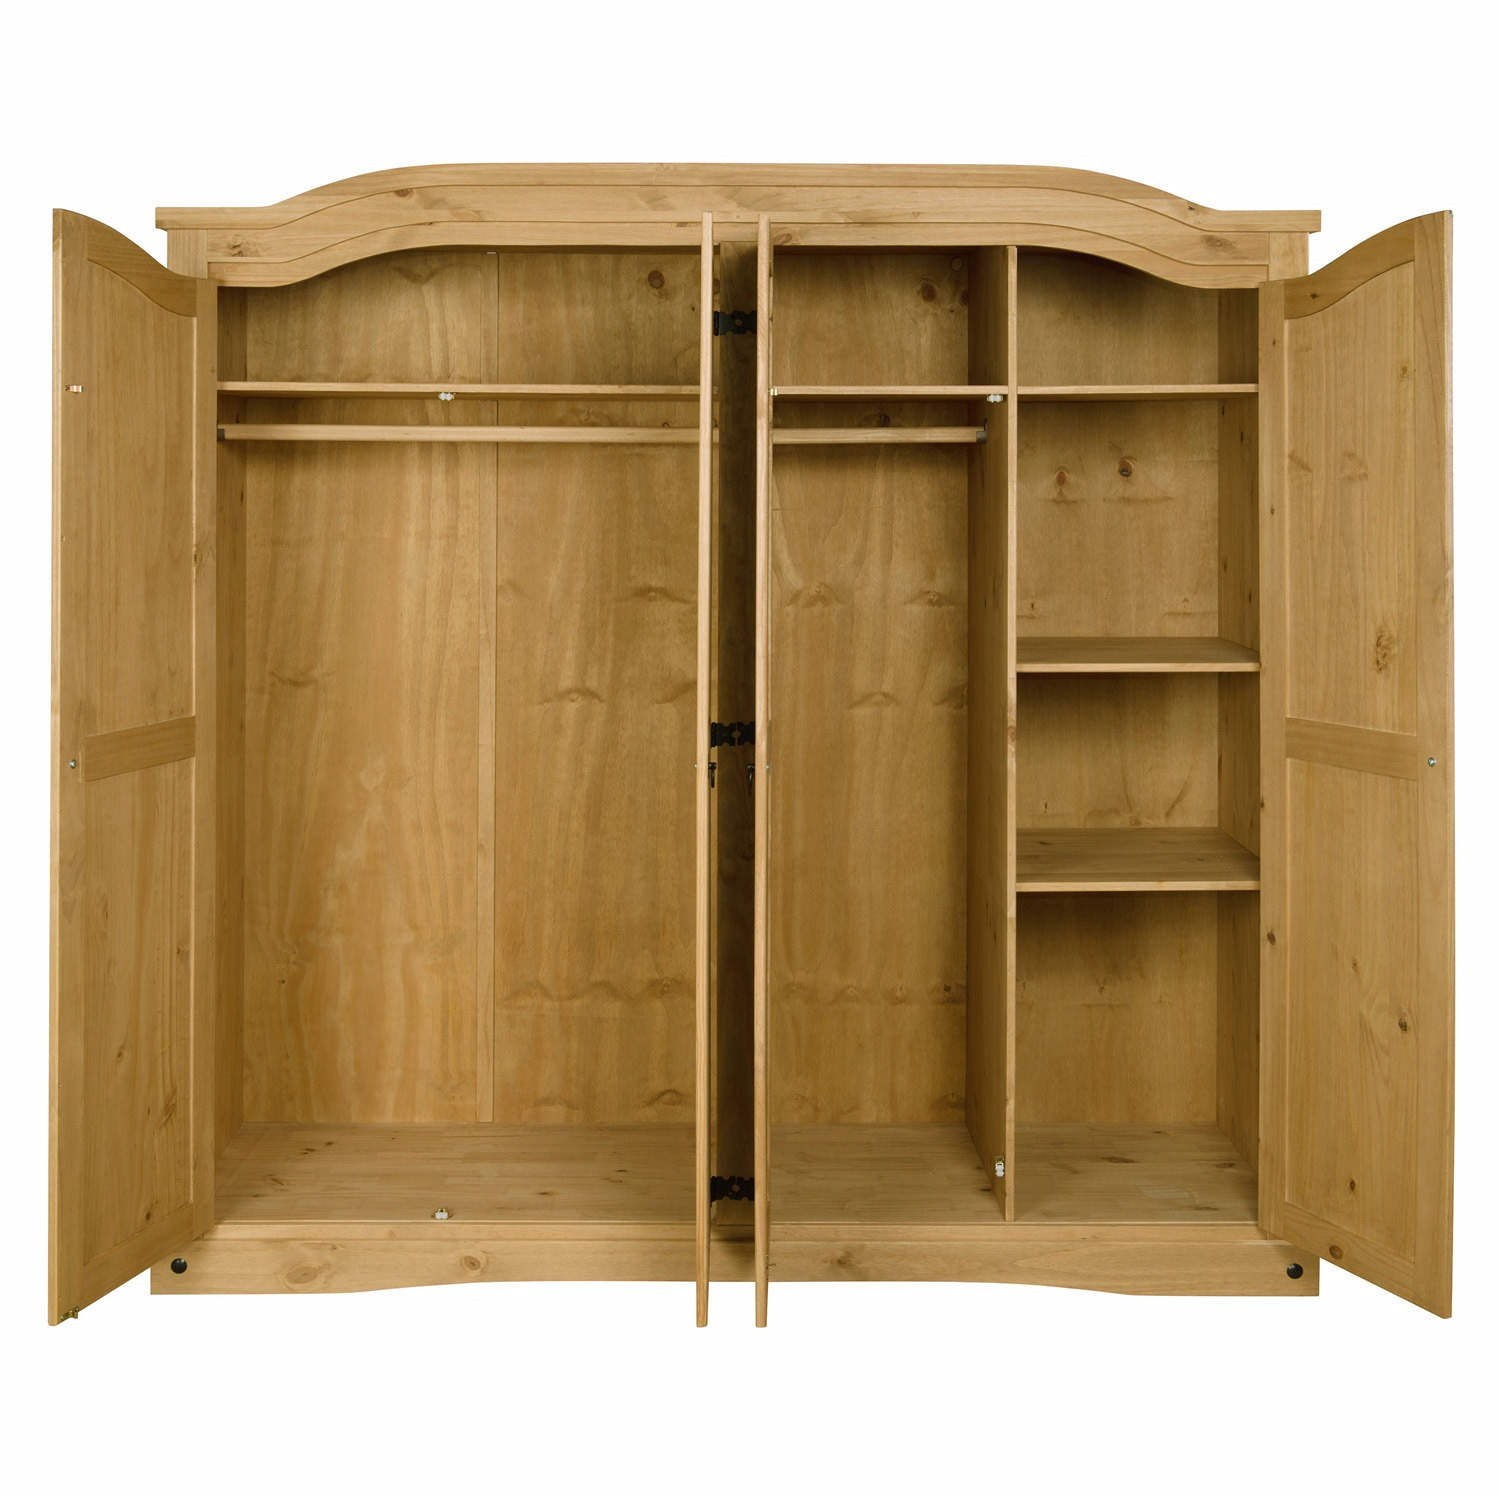 preferred for white this see storages must you fitted photos wardrobe dark wardrobes solid furniture cheap accent wood